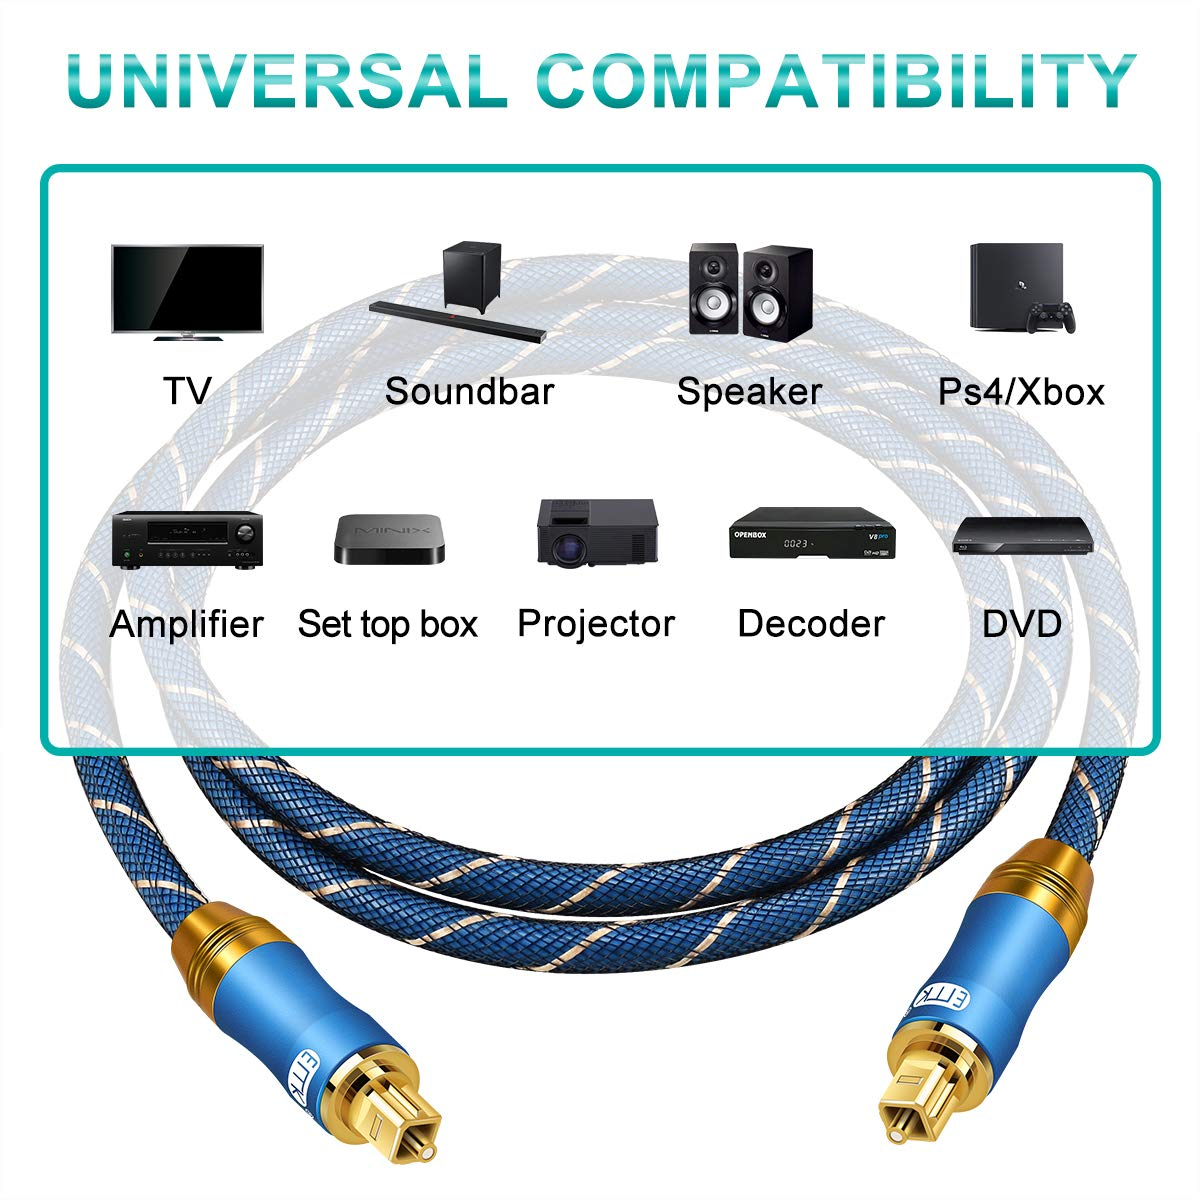 90 Degree Swivel Adjustable Right Angled Optical Audio Cable,EMK Rotatable TOSLINK Pulg Fiber Optic Cord for Blu-Ray Player,Soundbar,HDTV,PS3//PS4 Xbox and More